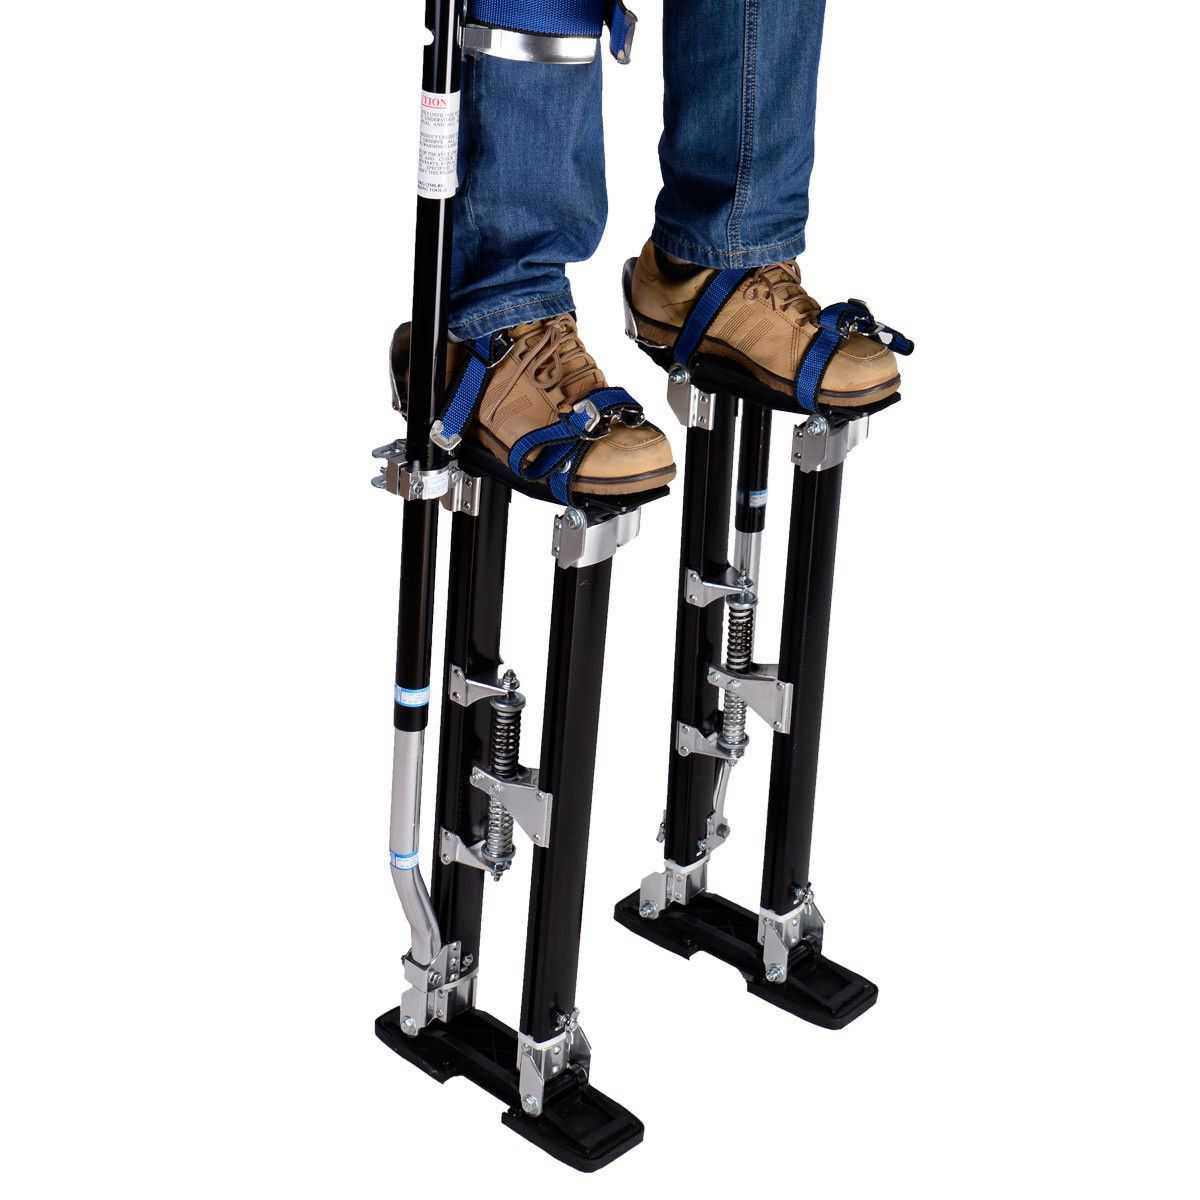 Drywall Stilts Aluminum Tool Stilt For Painting 24-40 Inch